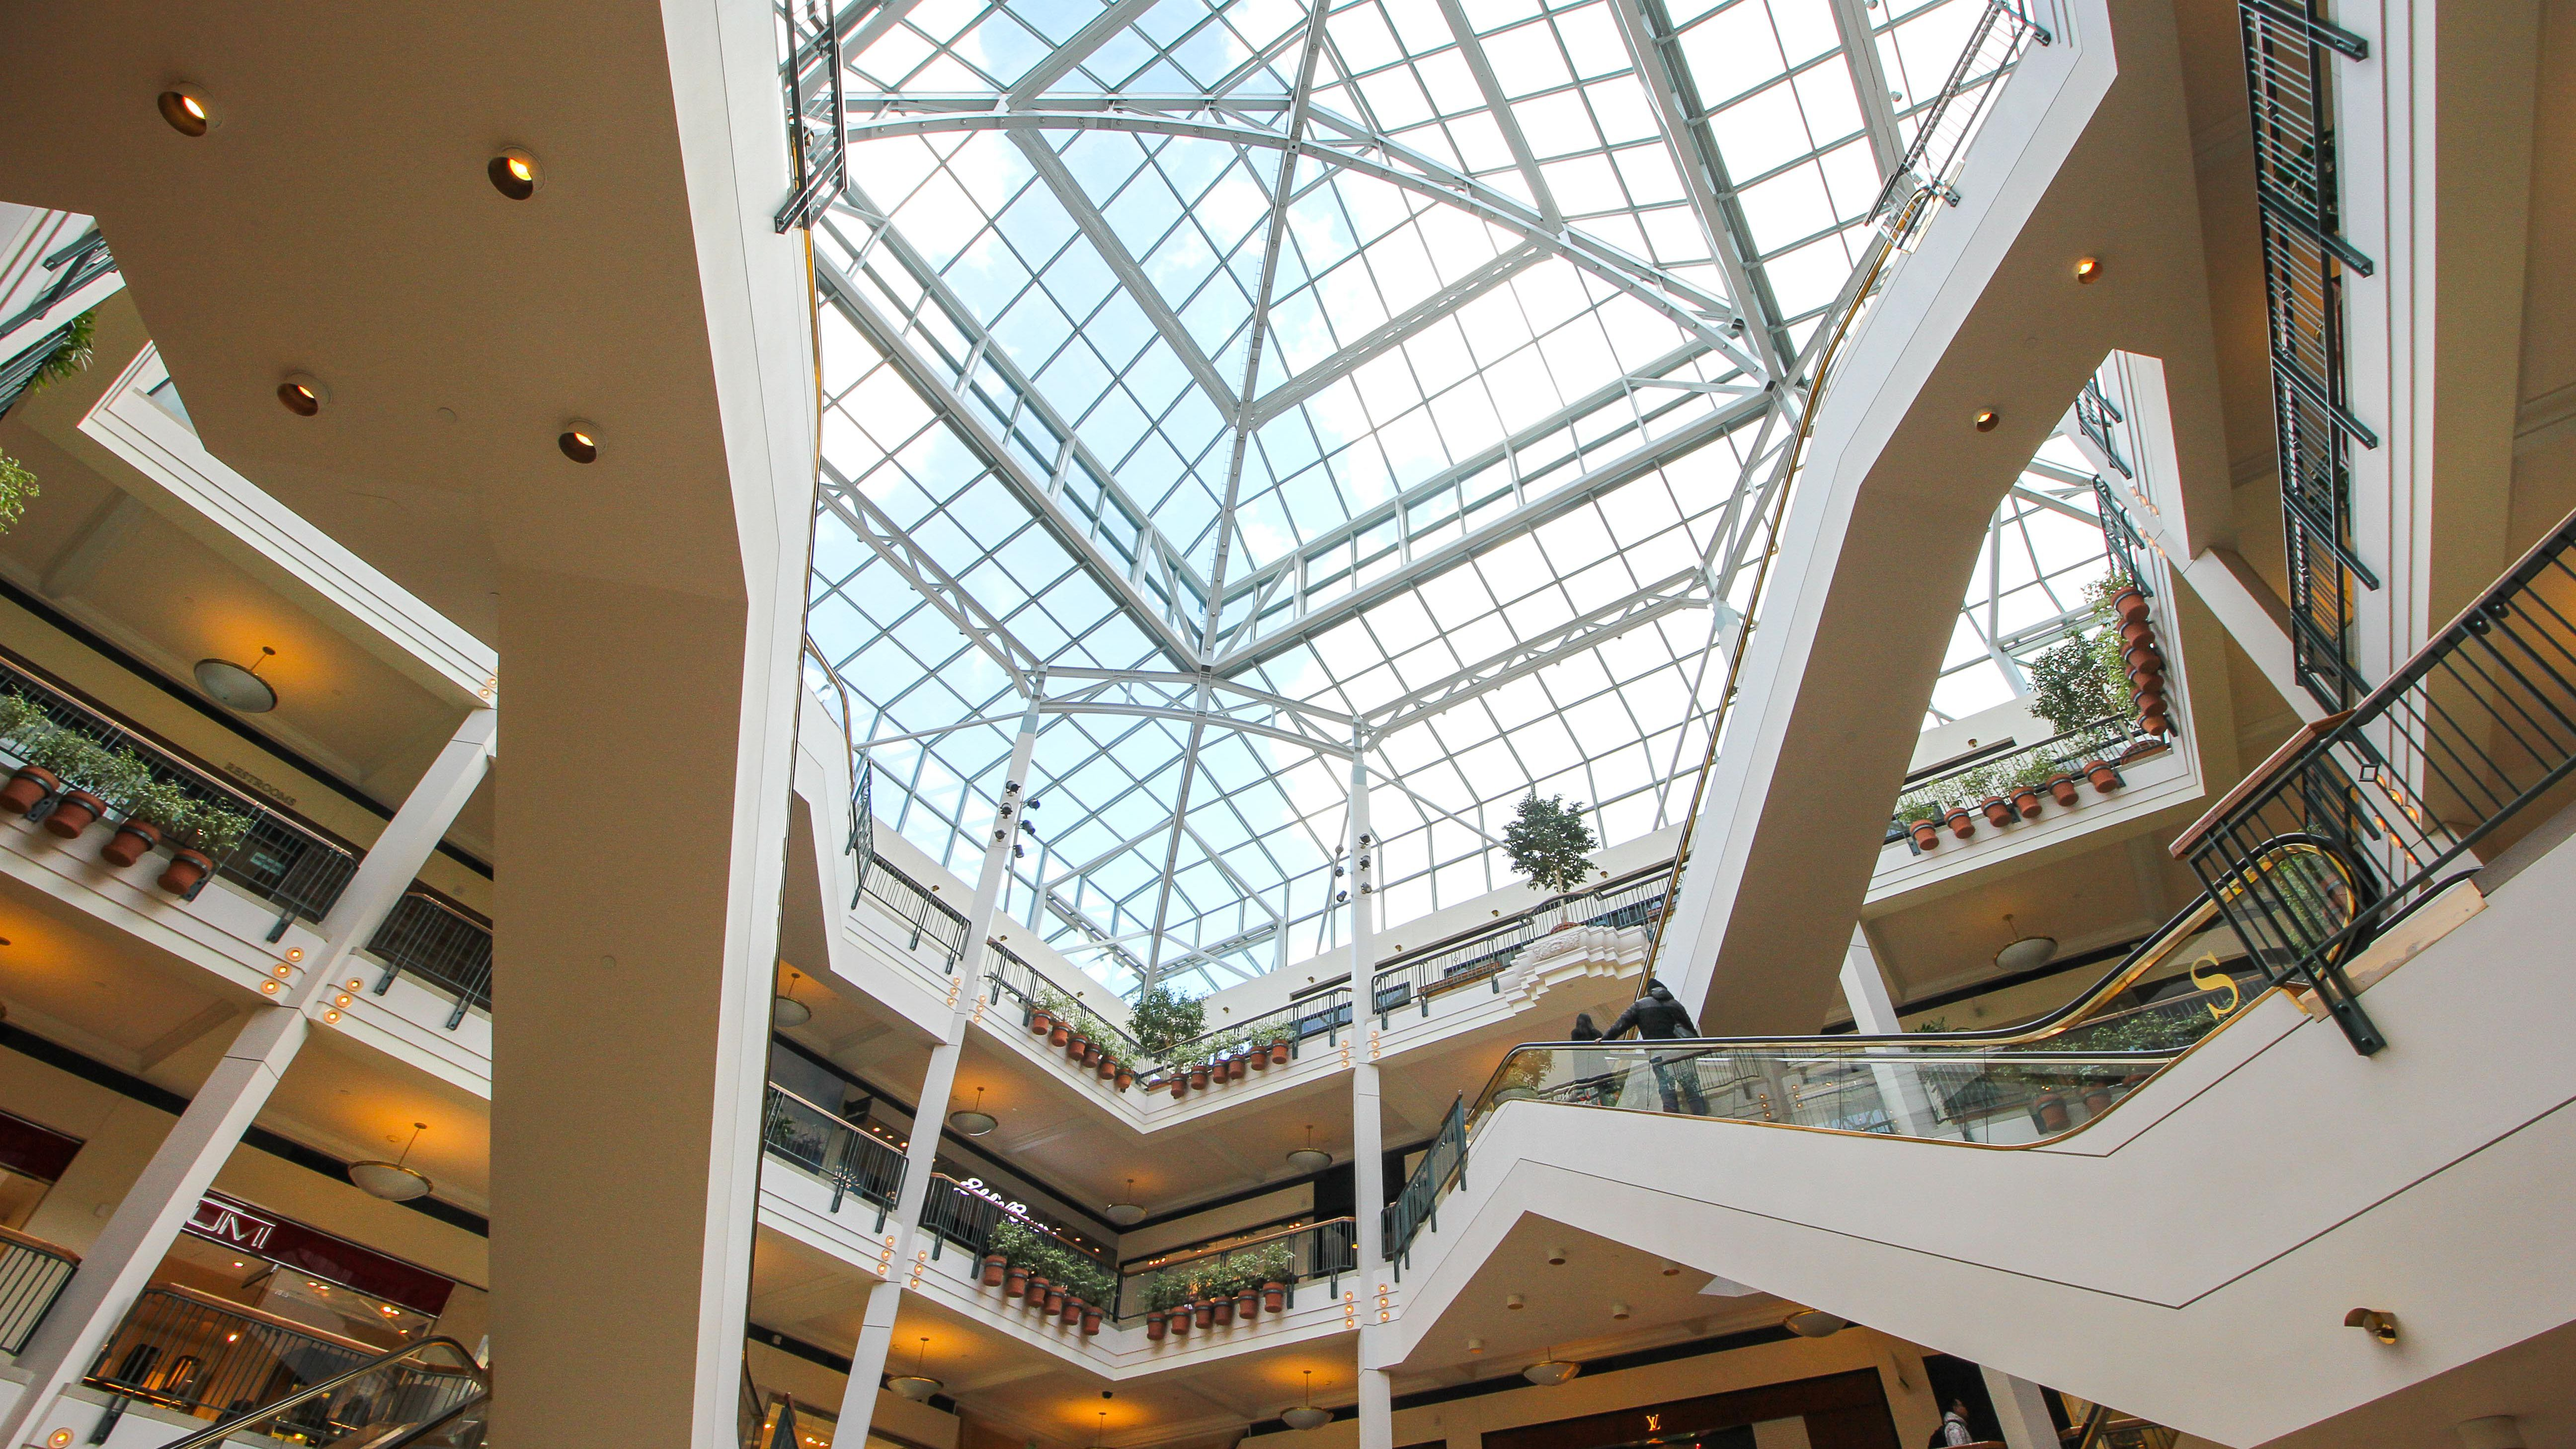 Where Can I Find Shopping Malls in Portland Oregon?